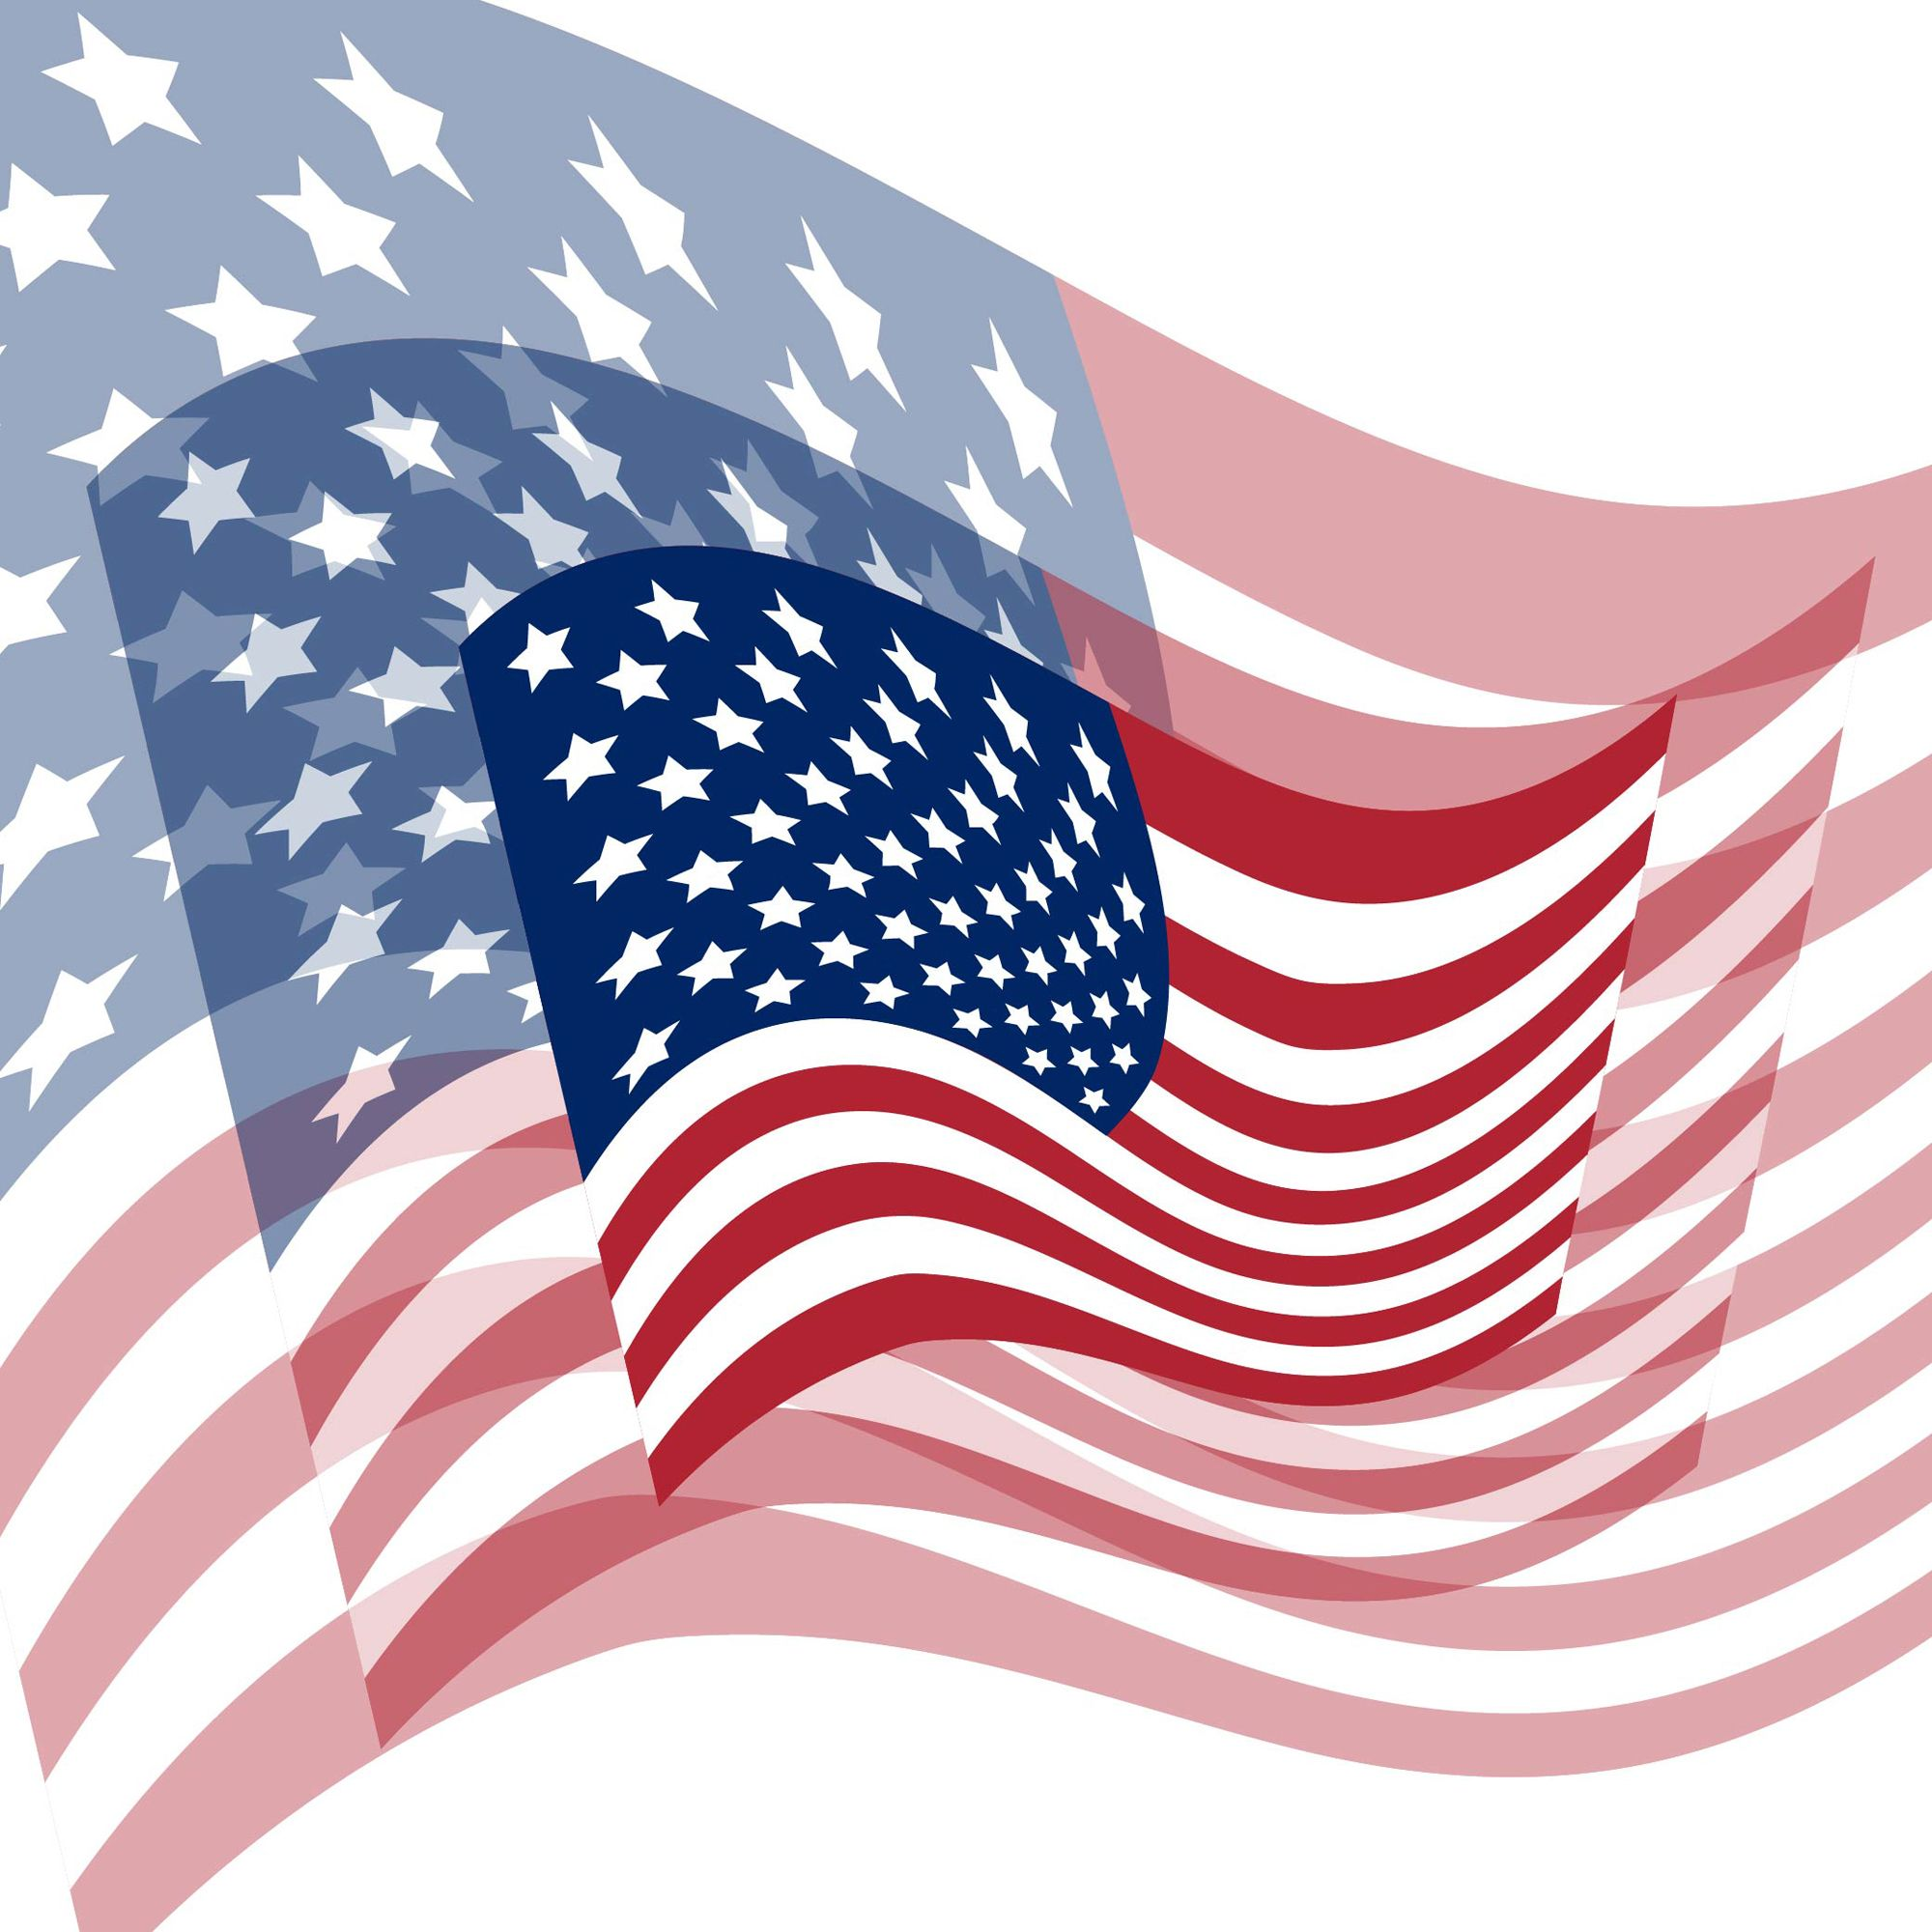 American flag american poster stock images free